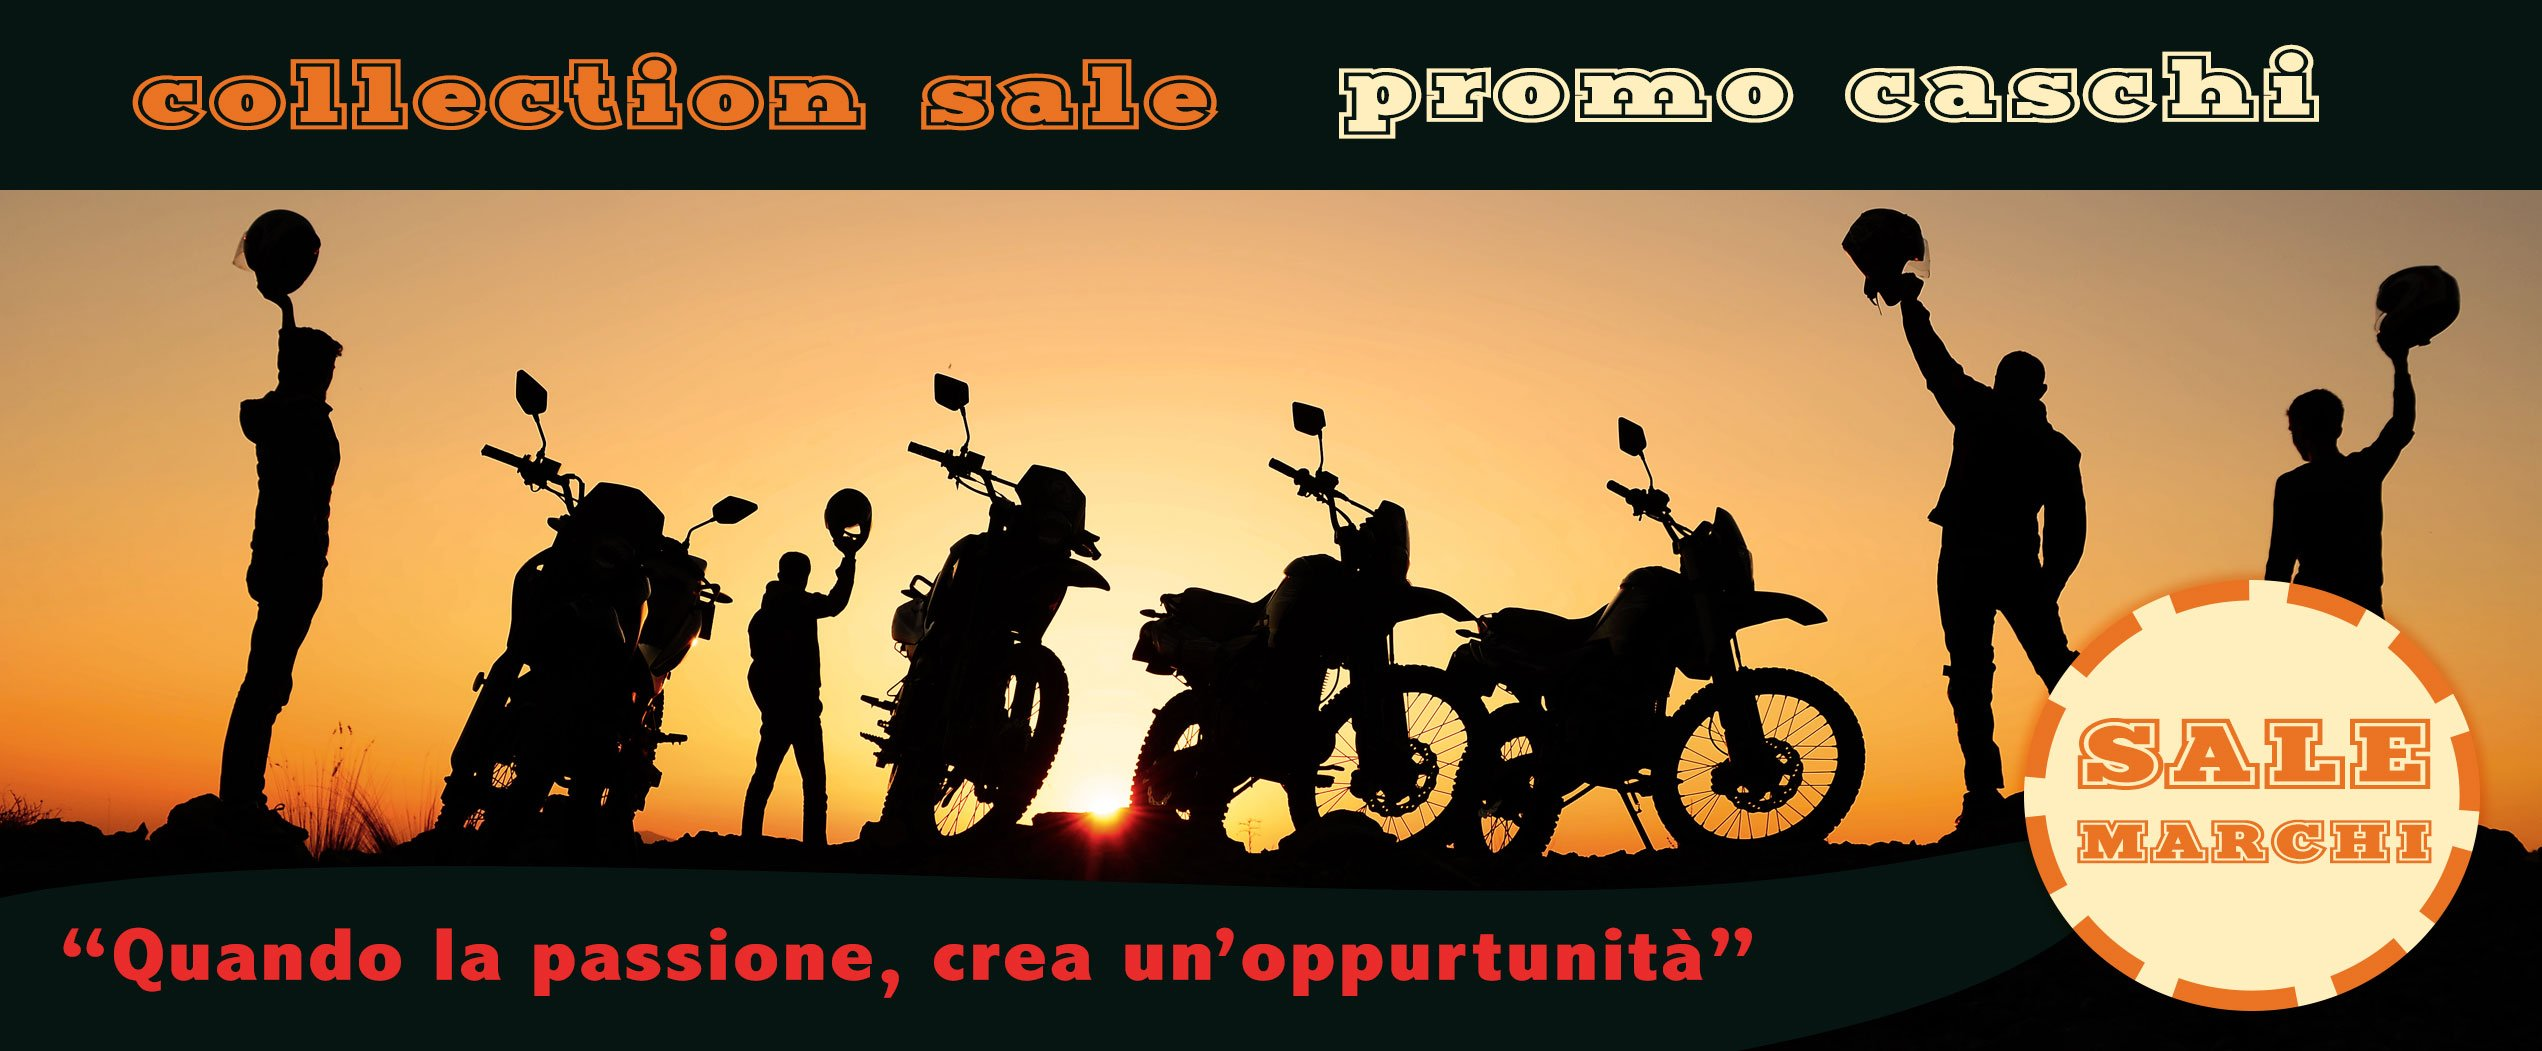 collection sale promo caschi